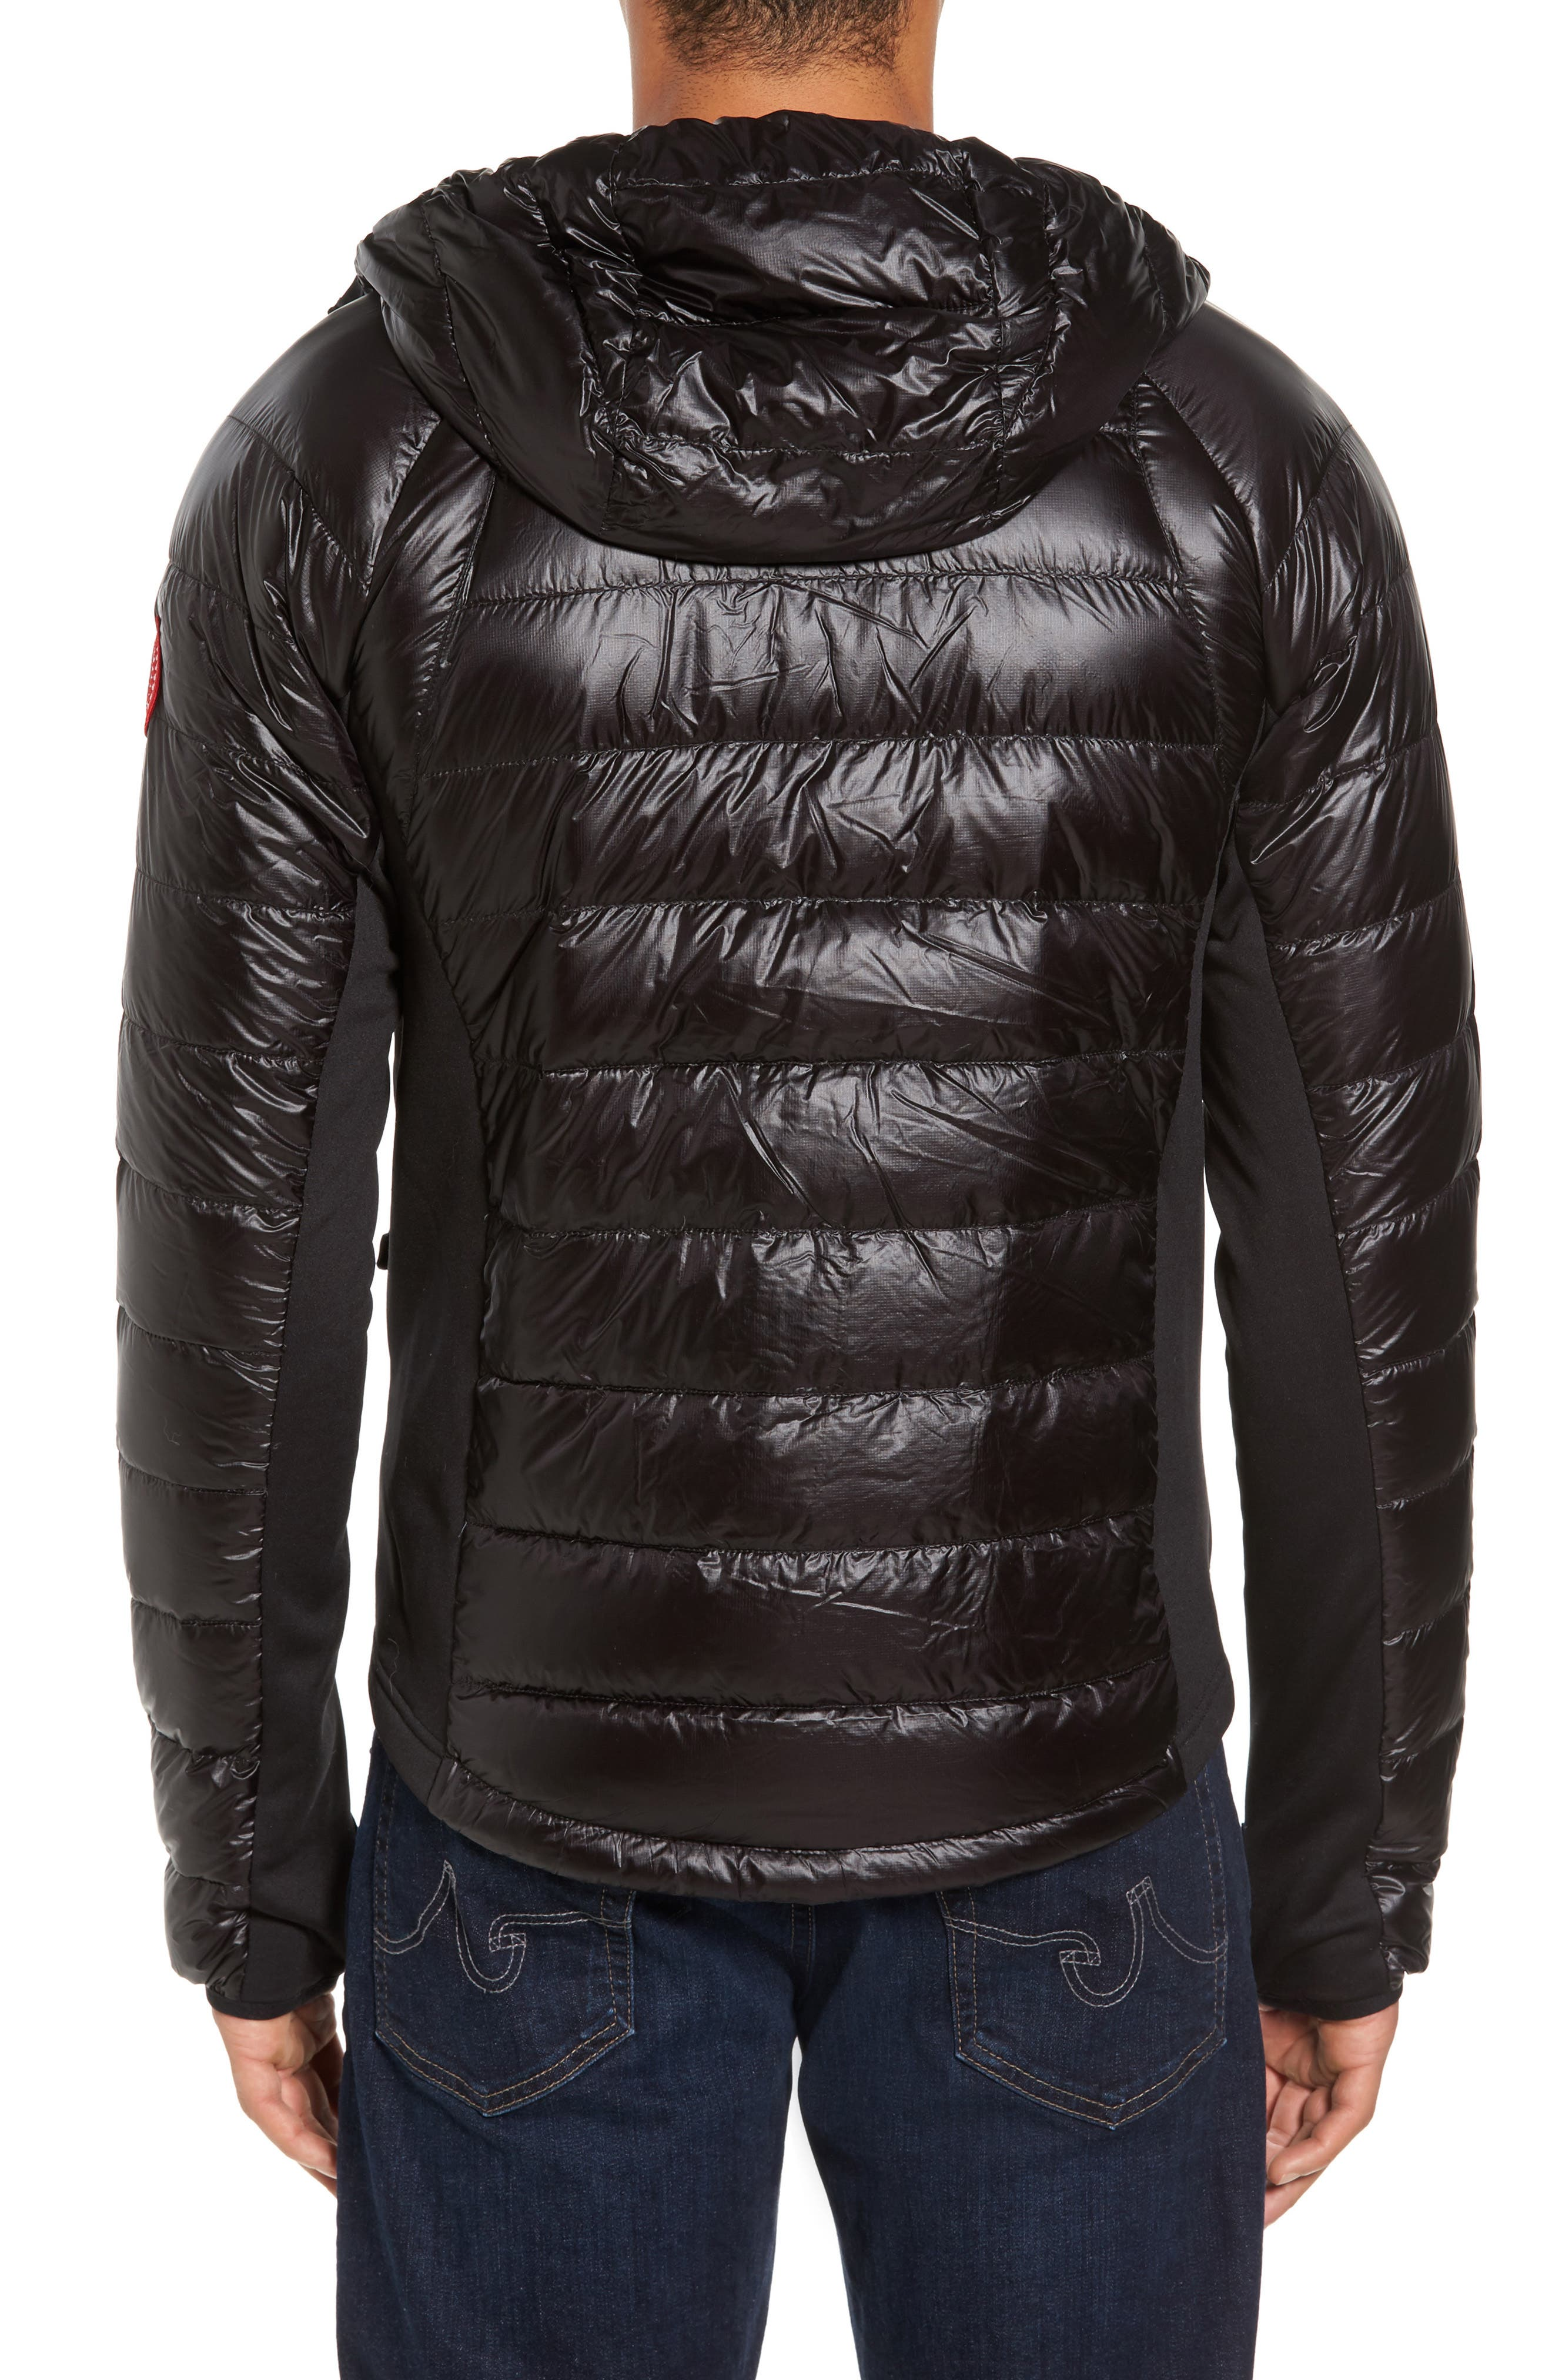 today jacket braveman s shipping product men mens clothing free quilted shoes quilt overstock